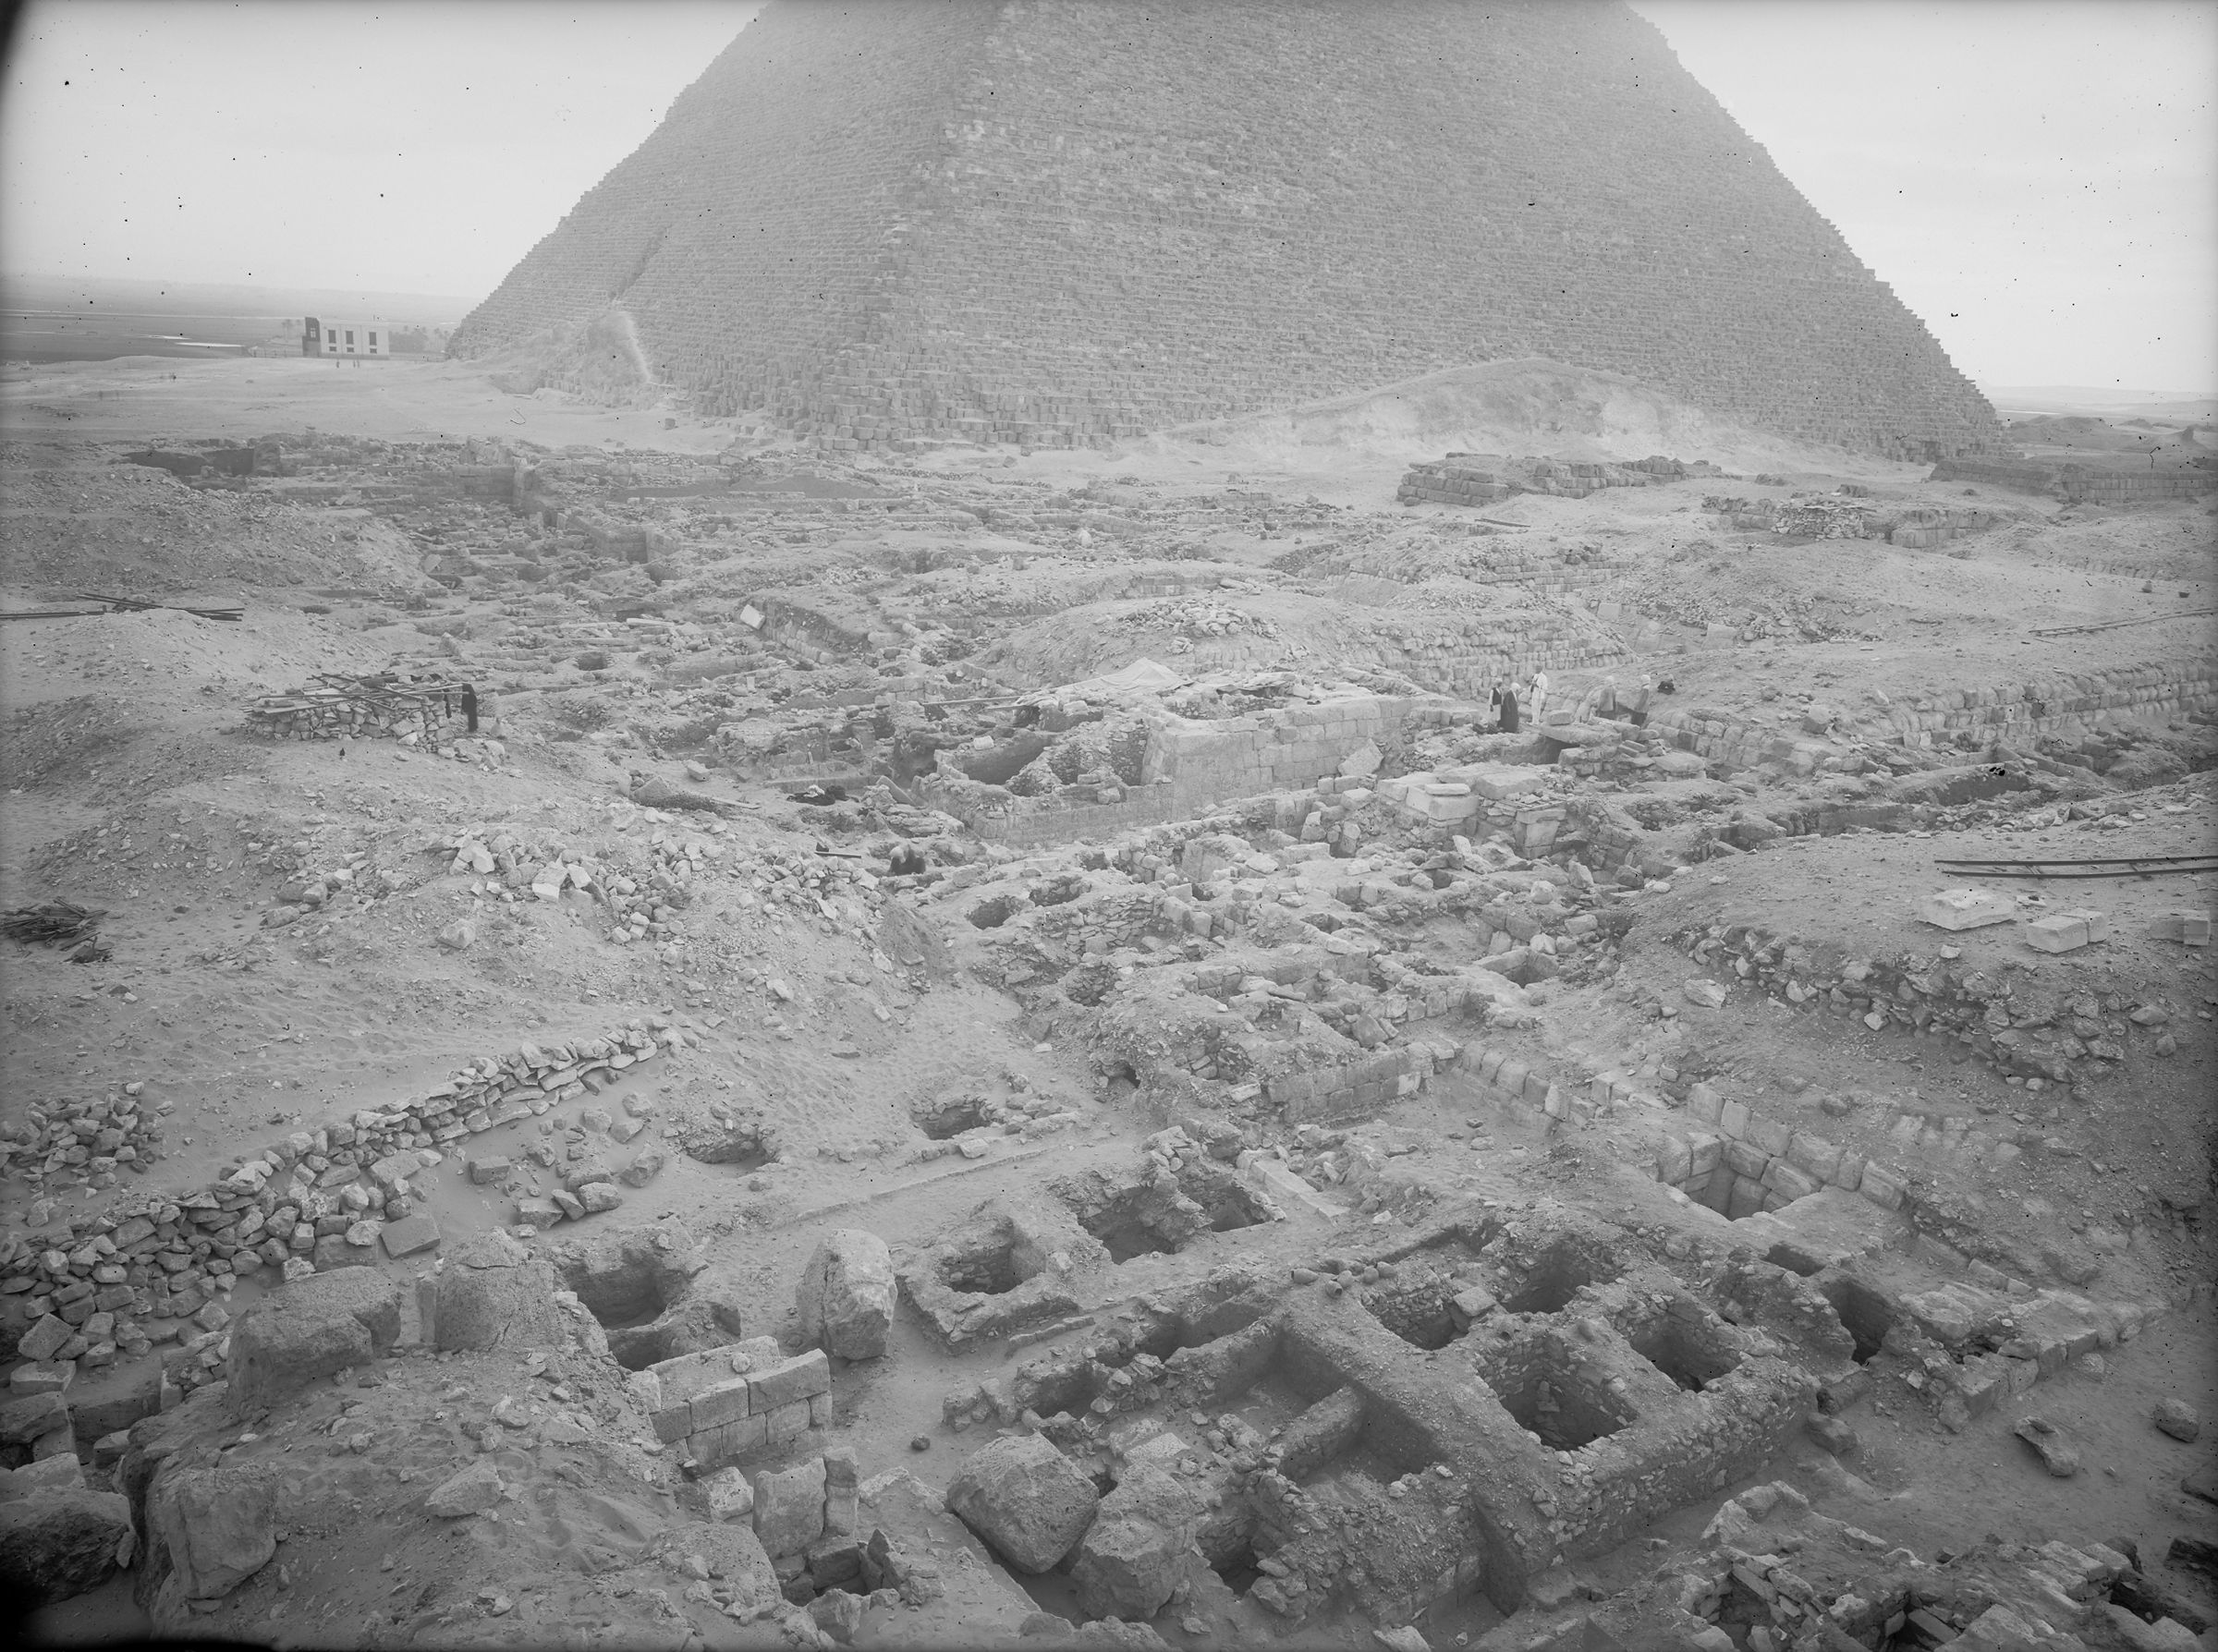 Western Cemetery: Site: Giza; View: G 2156', G 2222, G 2154, G 2154a, G 2157, G 2223, G 2223a, G 2224, G 2225, G 2170, G 2180, G 2172, G 2175, G 2176, G 2177, G 2178, G 2179, G 2184, G 2186